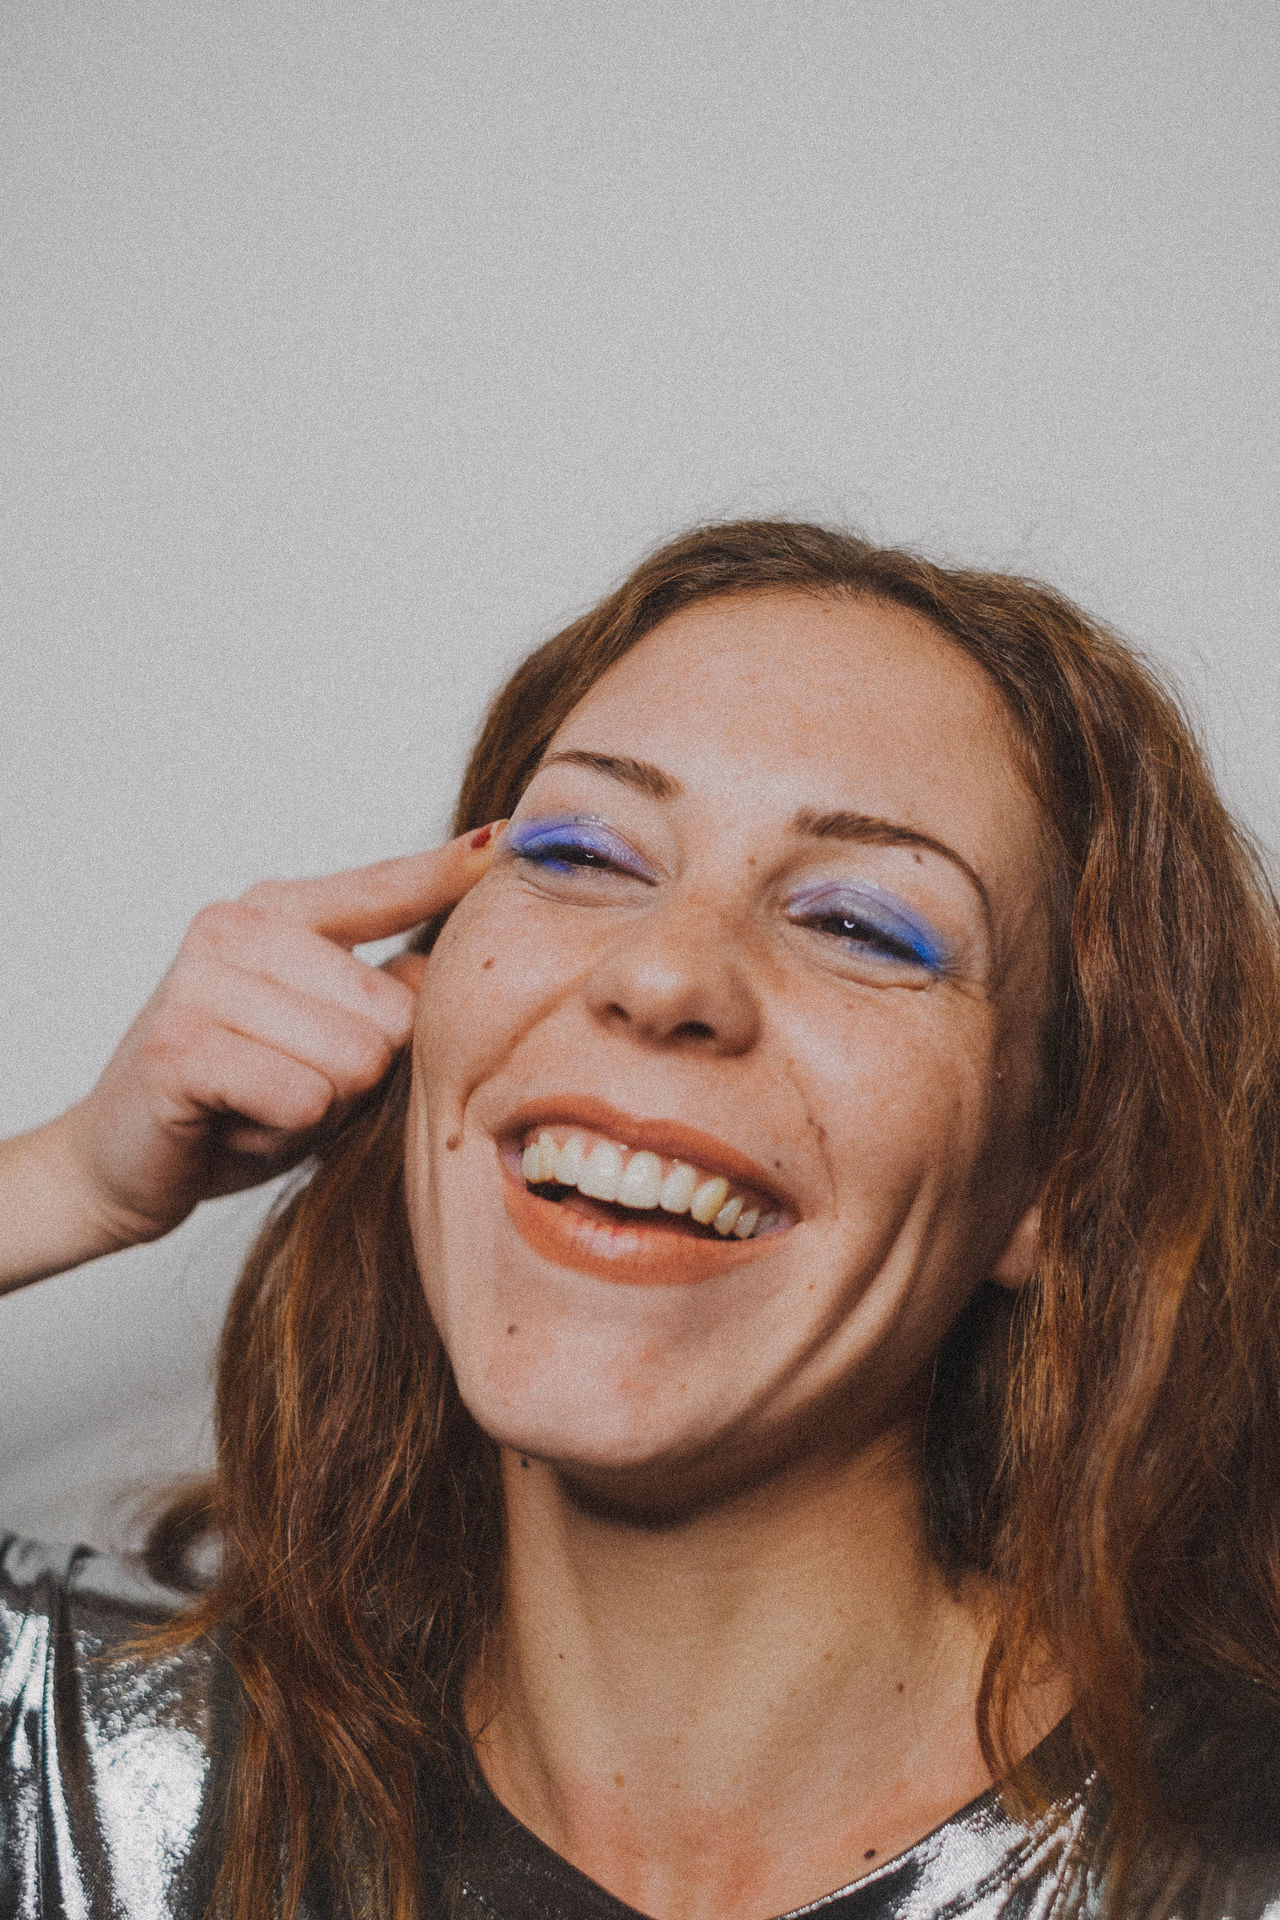 Smiling young woman with eye make-up against wall